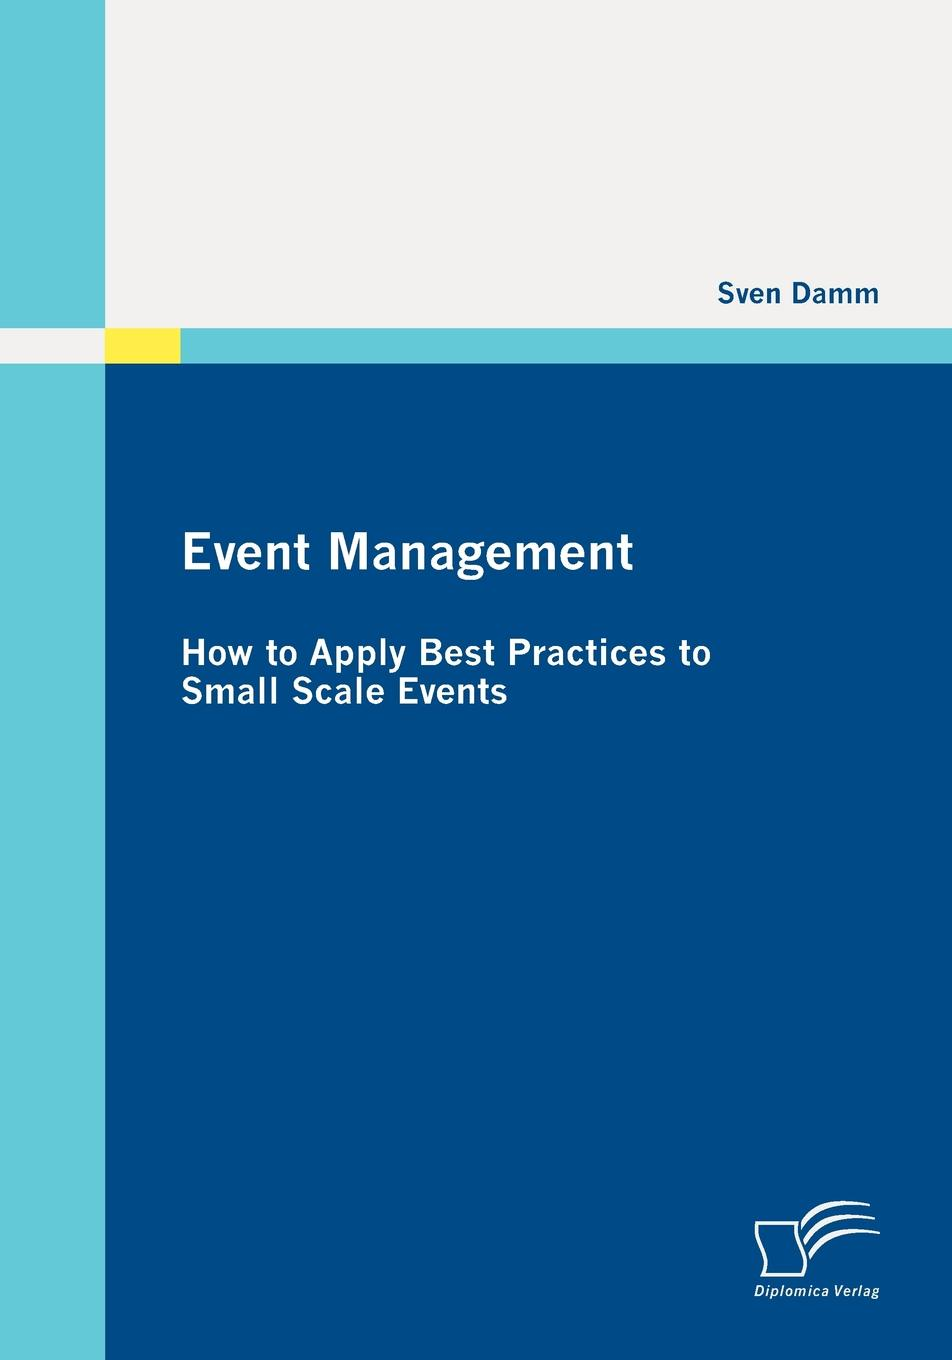 Sven Damm Event Management. How to Apply Best Practices to Small Scale Events laura capell event management for dummies